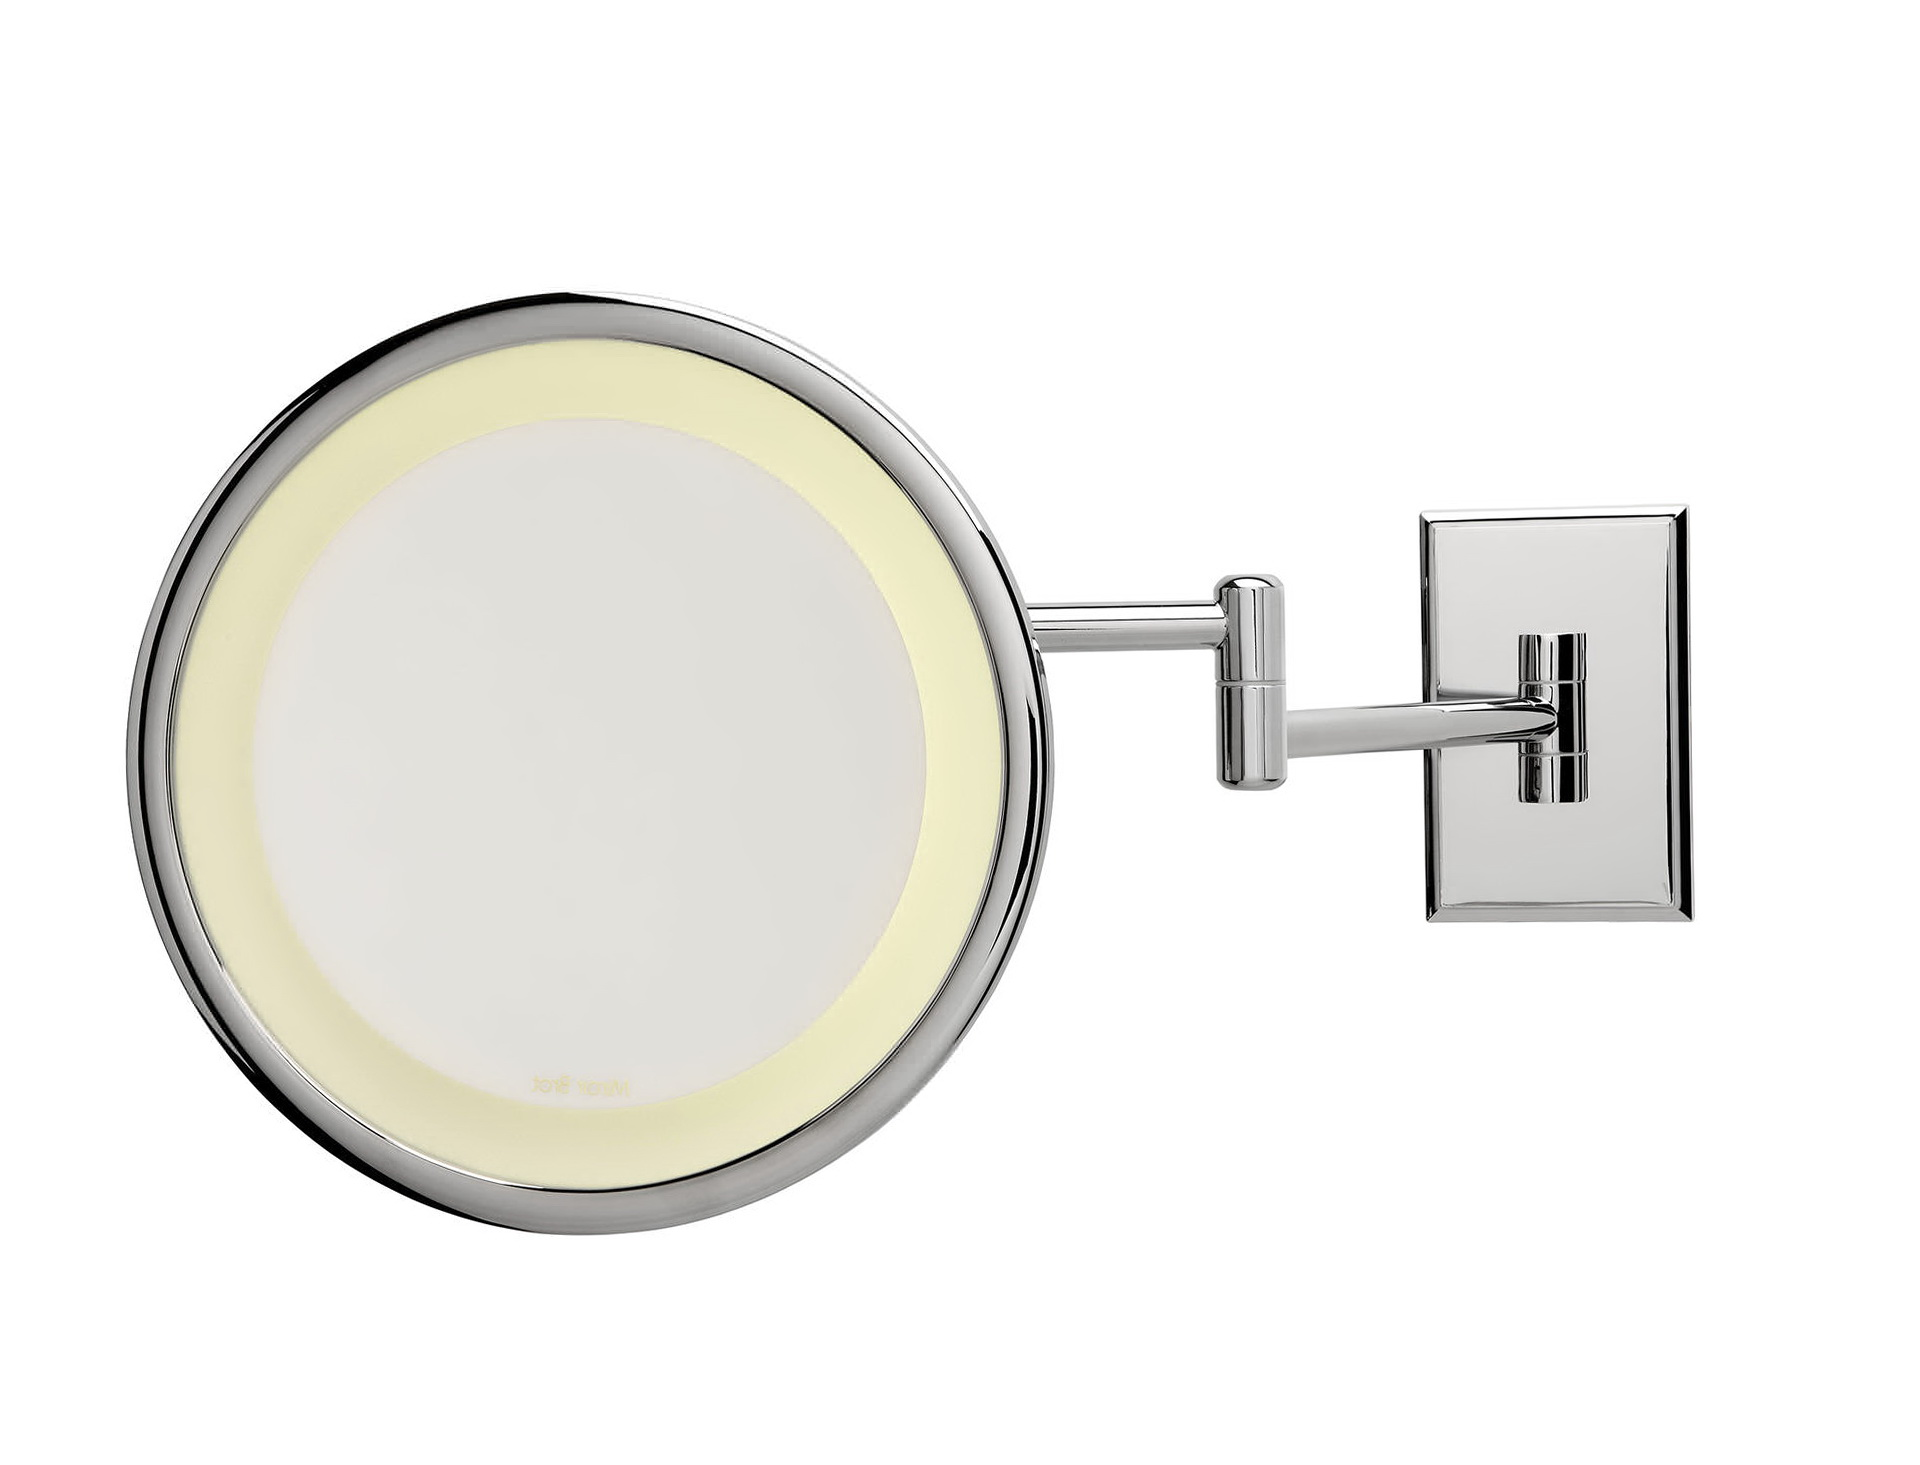 illuminated magnifying mirrors for bathrooms illuminated magnifying bathroom mirrors lighted bathroom 23527